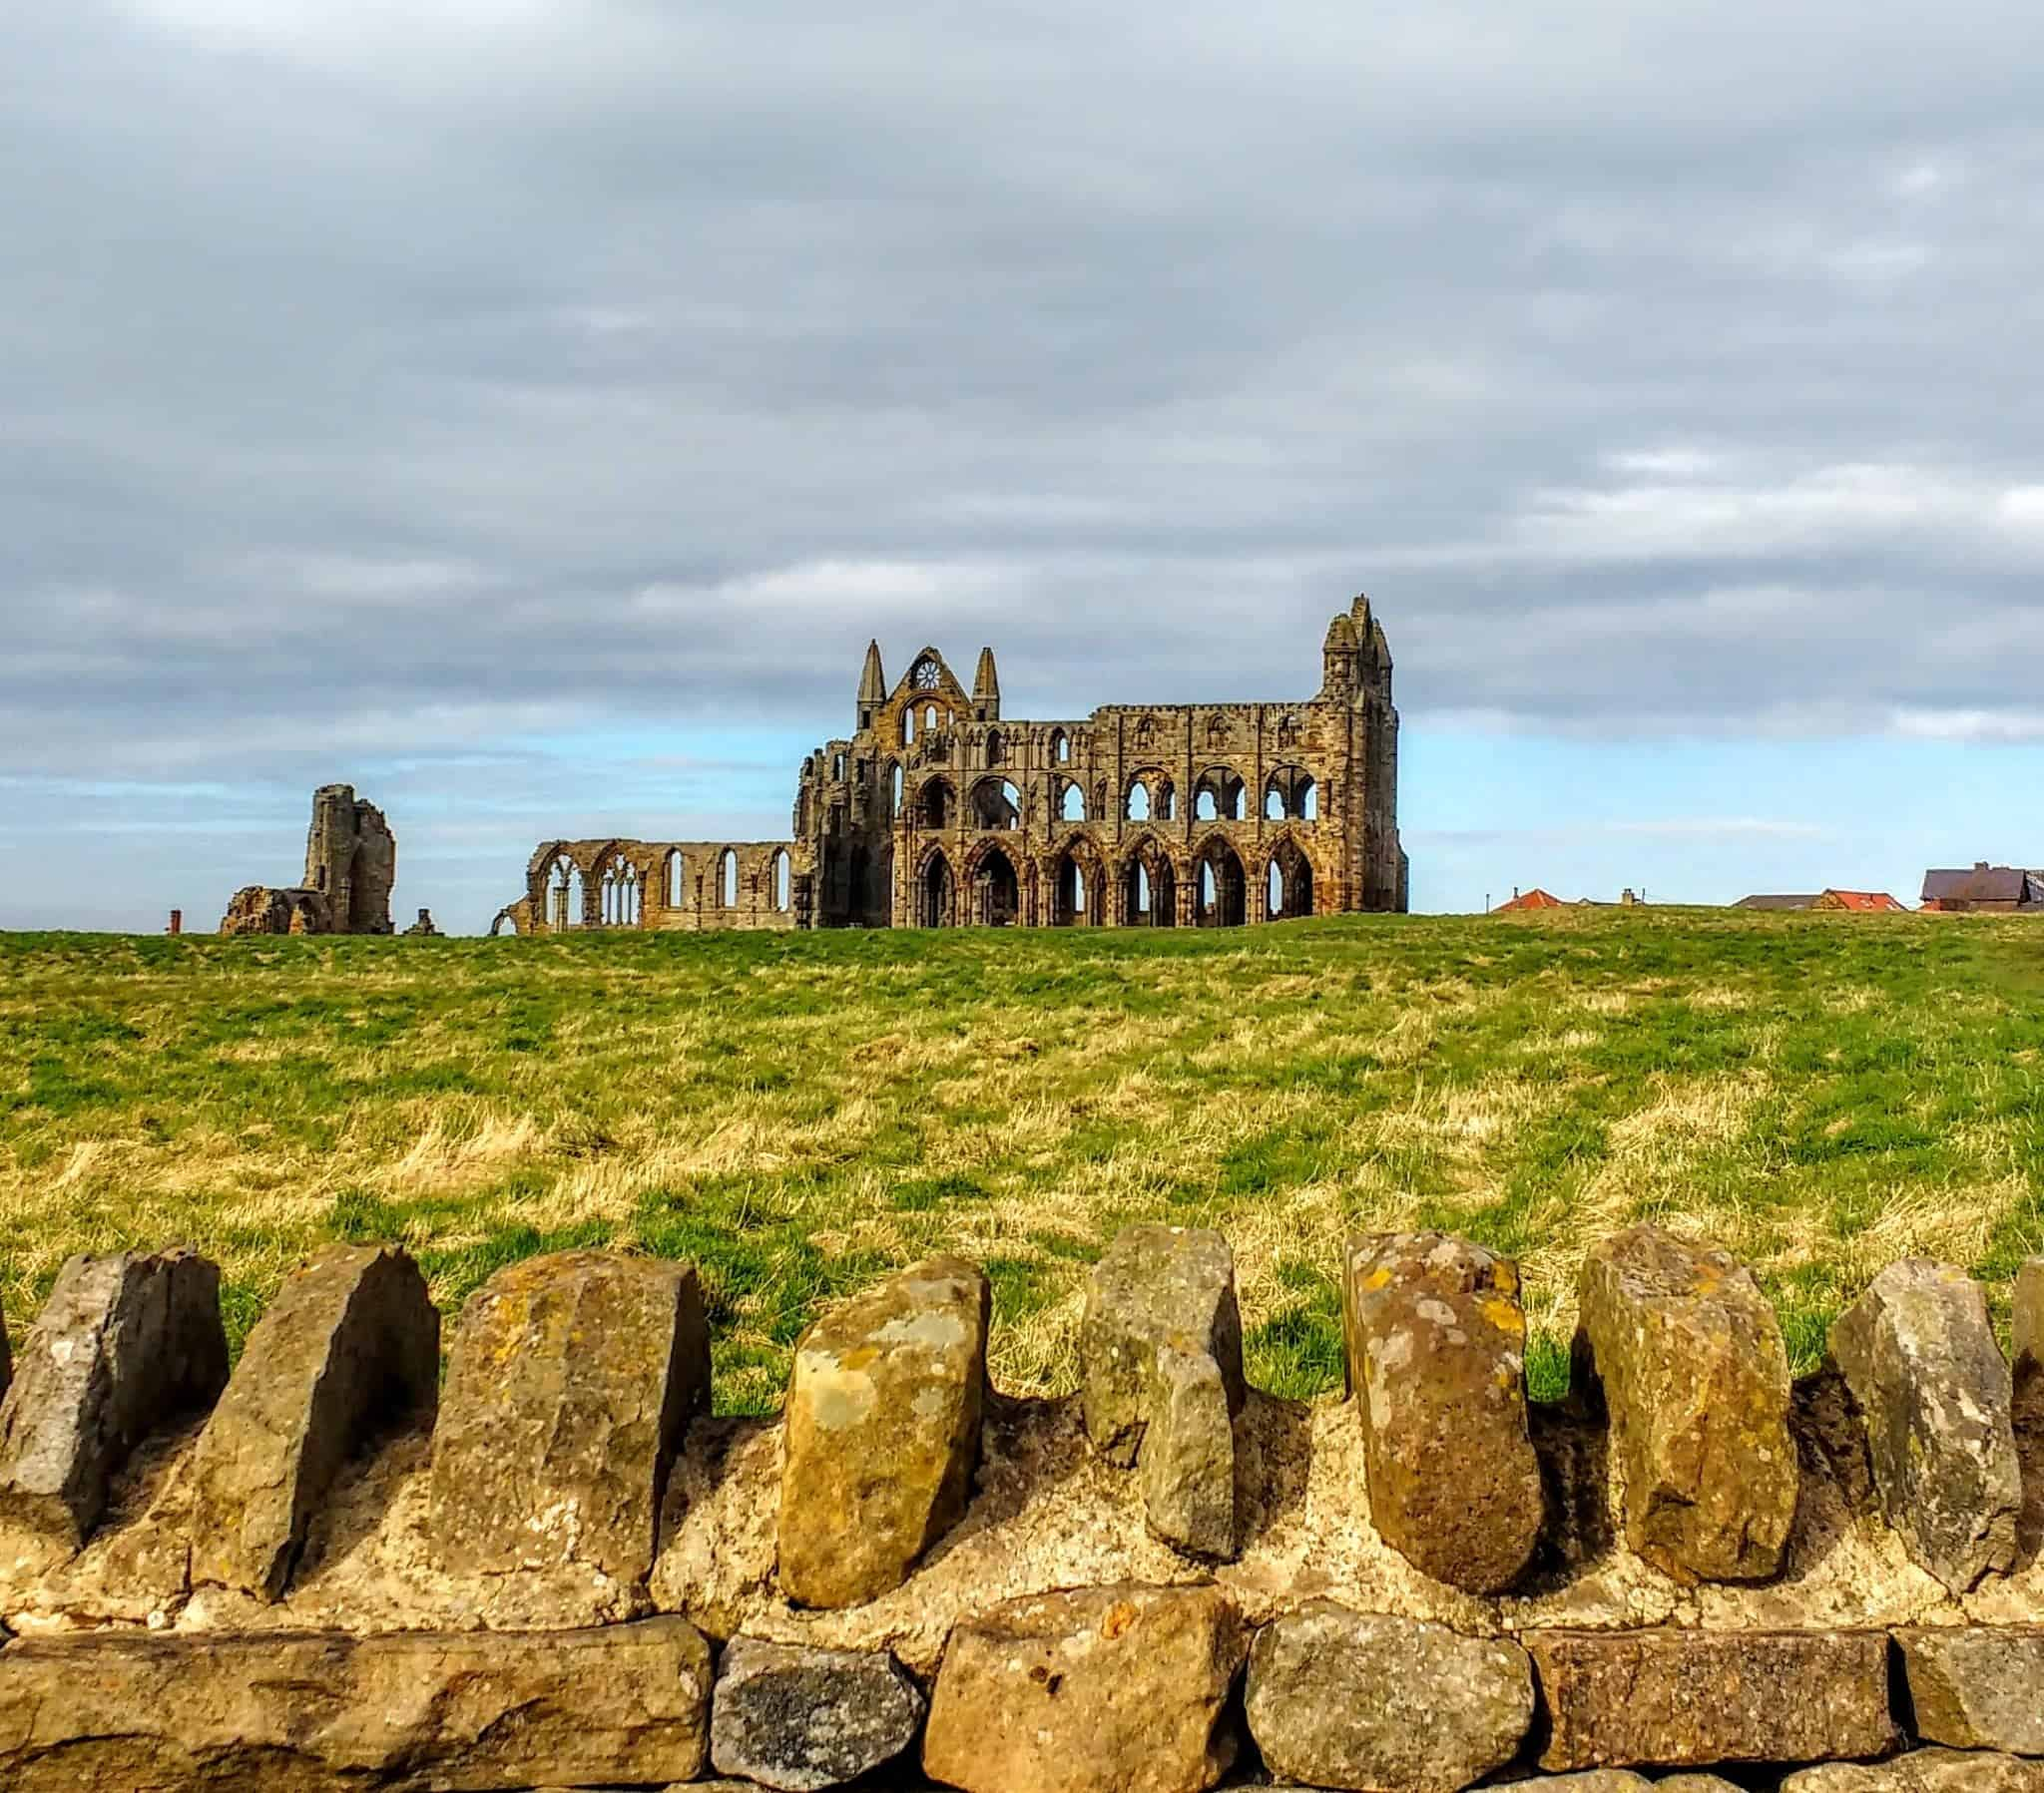 Whitby Abbey famed for being Bram Stoker's inspiration for Dracula